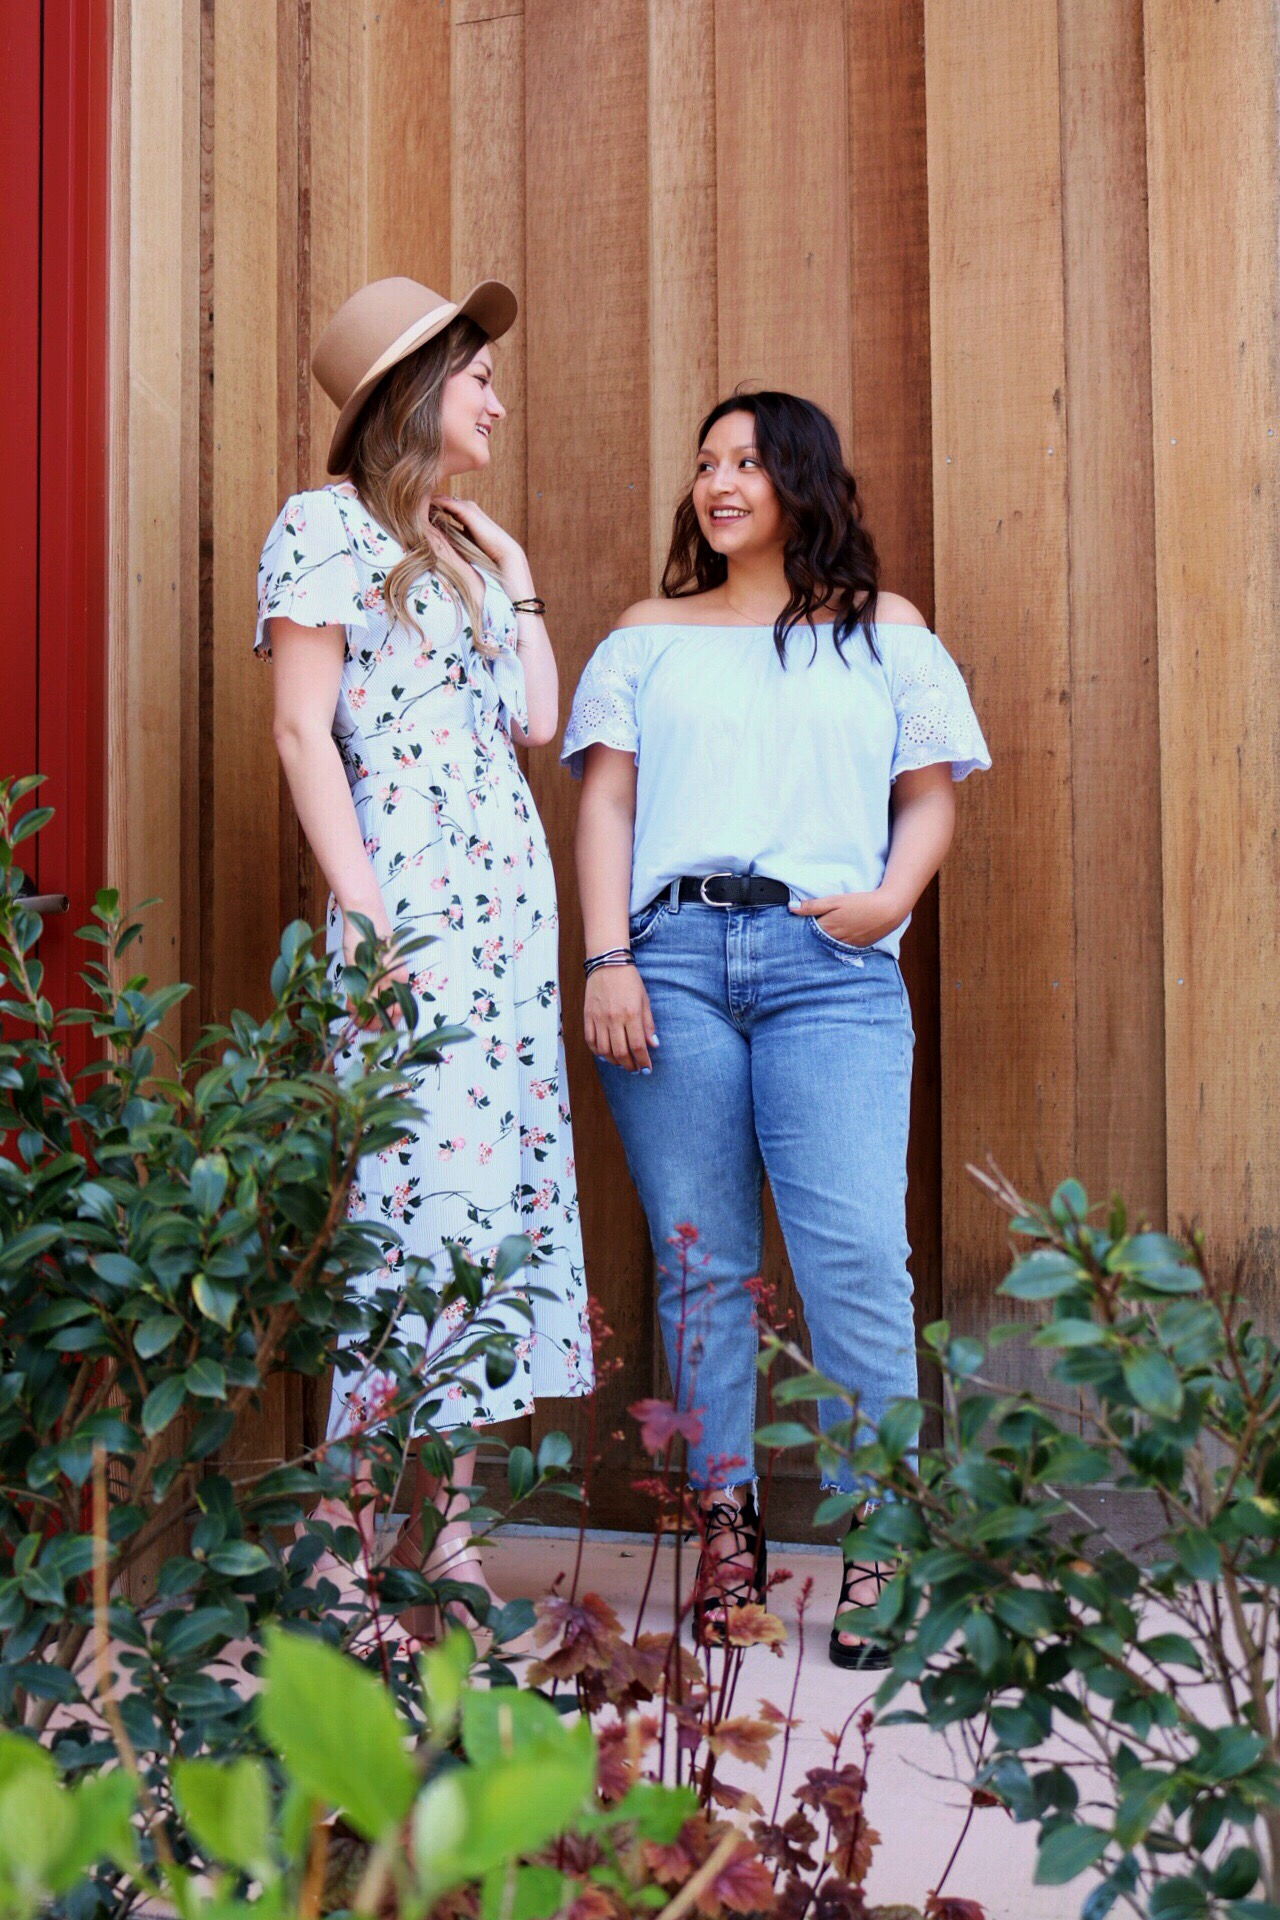 Floral jumpsuits and boyfriend jeans are outfit essentials for Springtime.